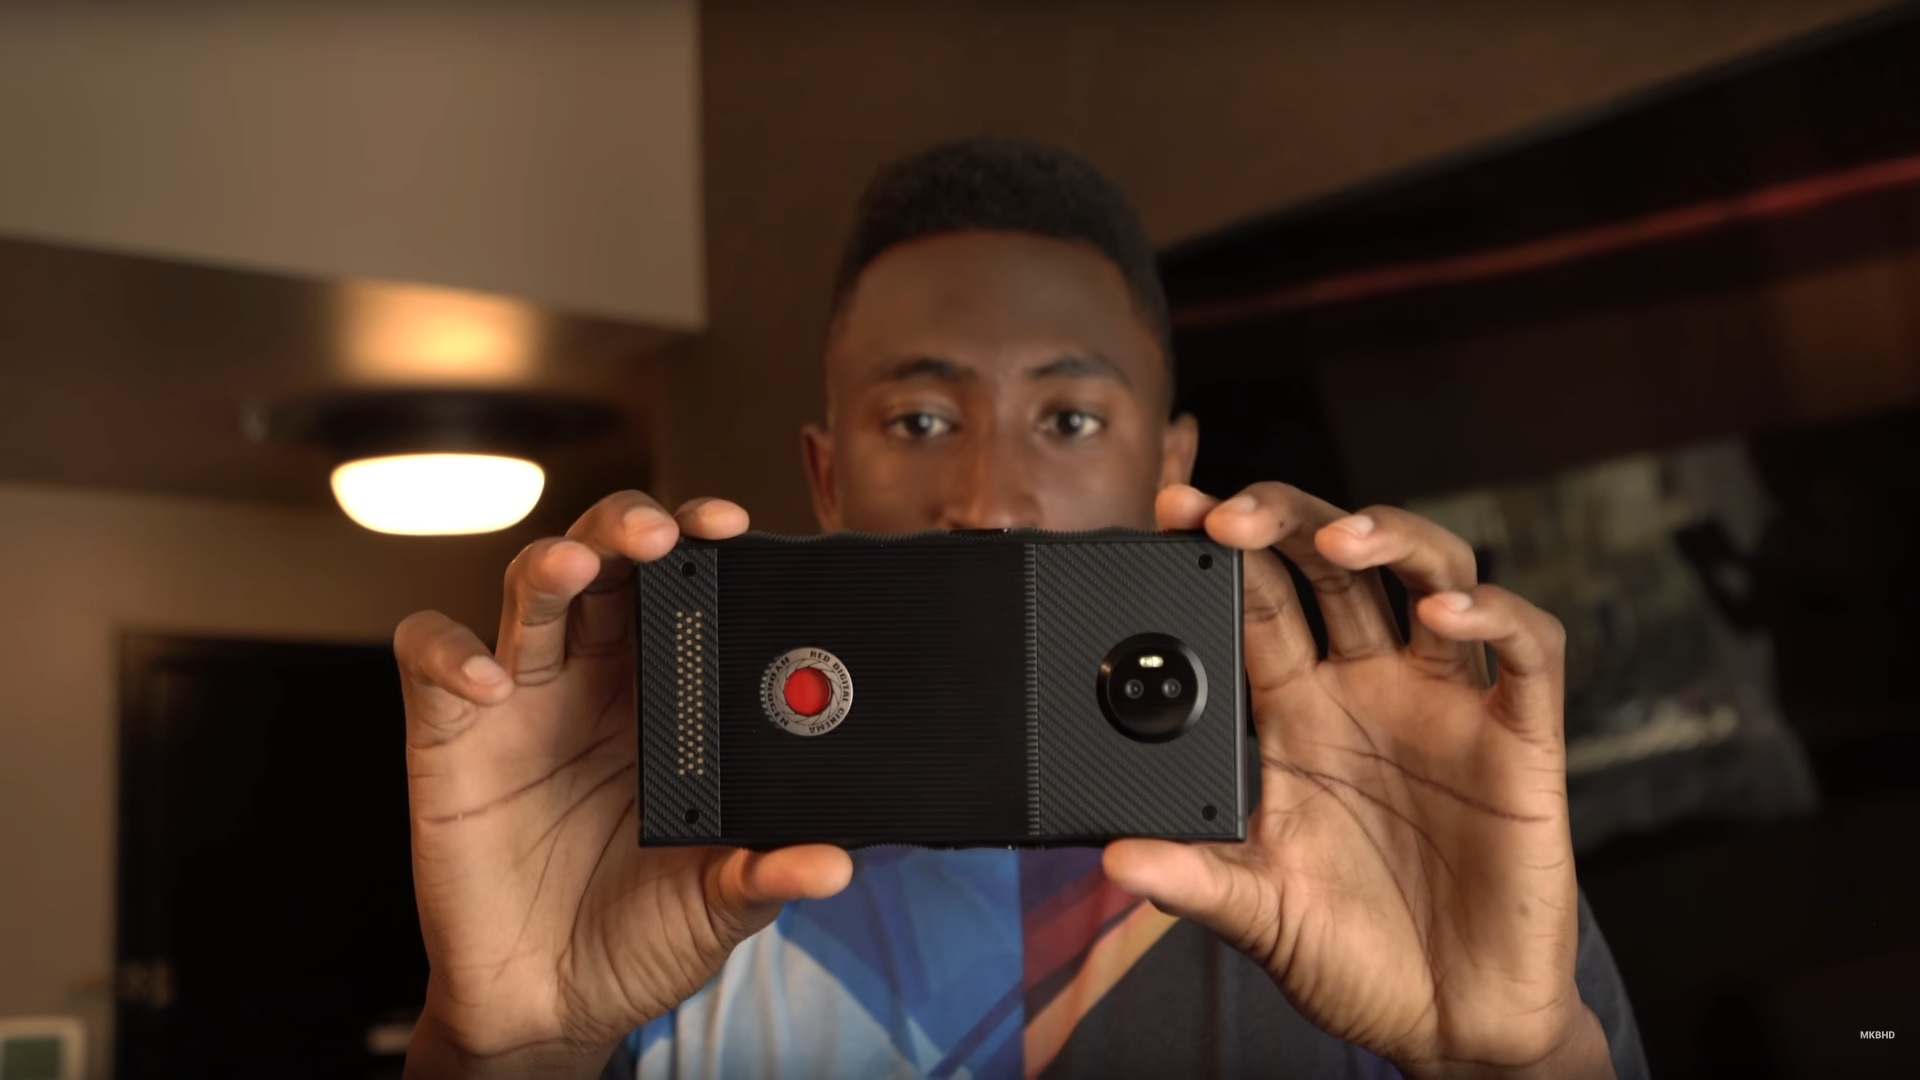 MKBHD shows off non-functional RED Hydrogen phone prototypes